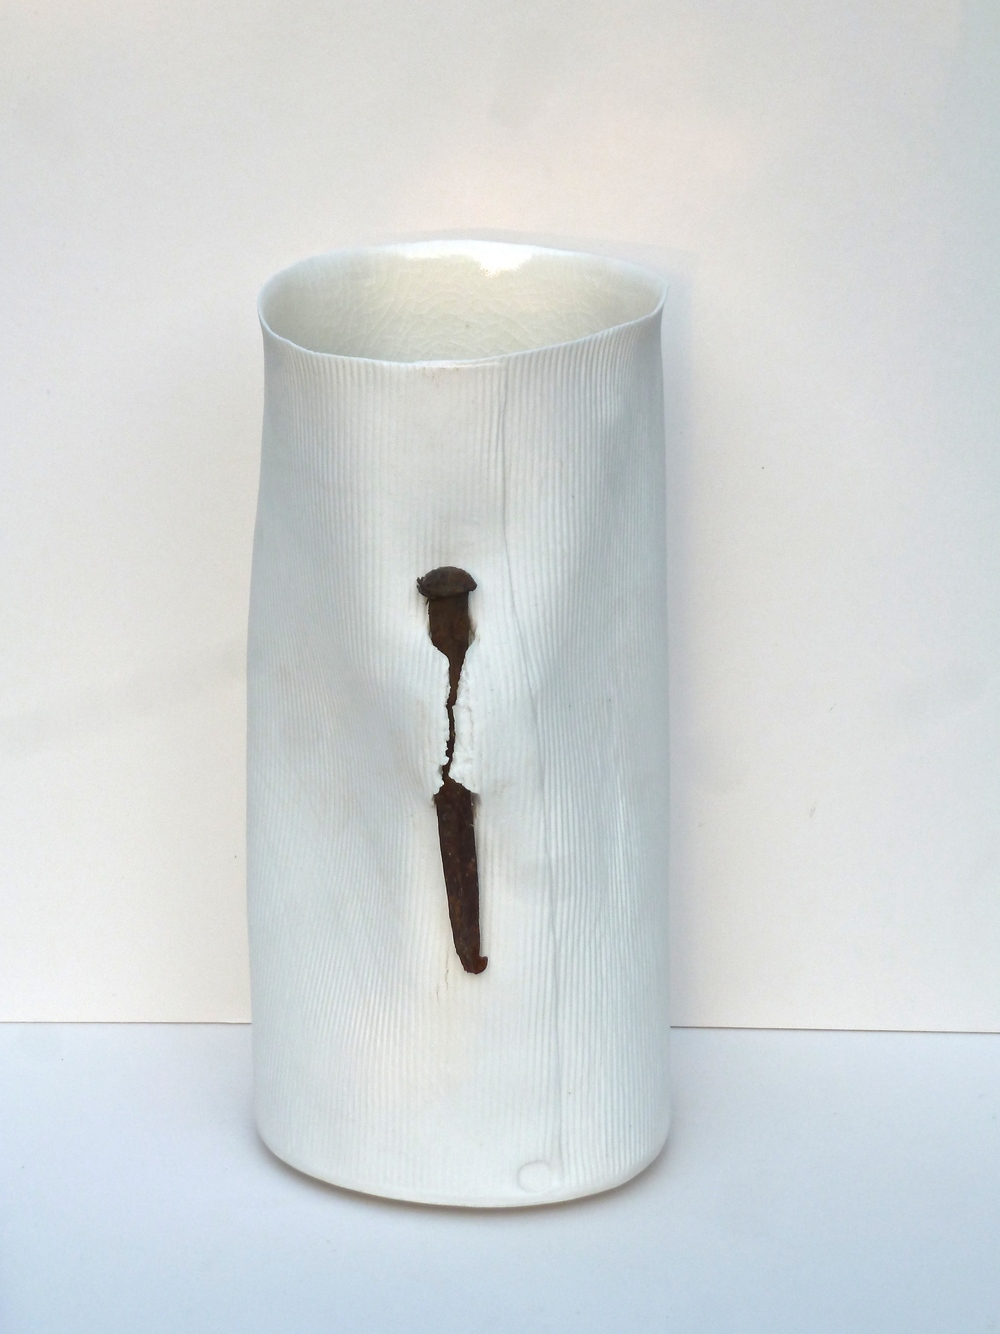 Nail Vessel: H. 25cm. Porcelain paper clay, impressed with corrugations and a transparent, shiny crackle glazed interior.